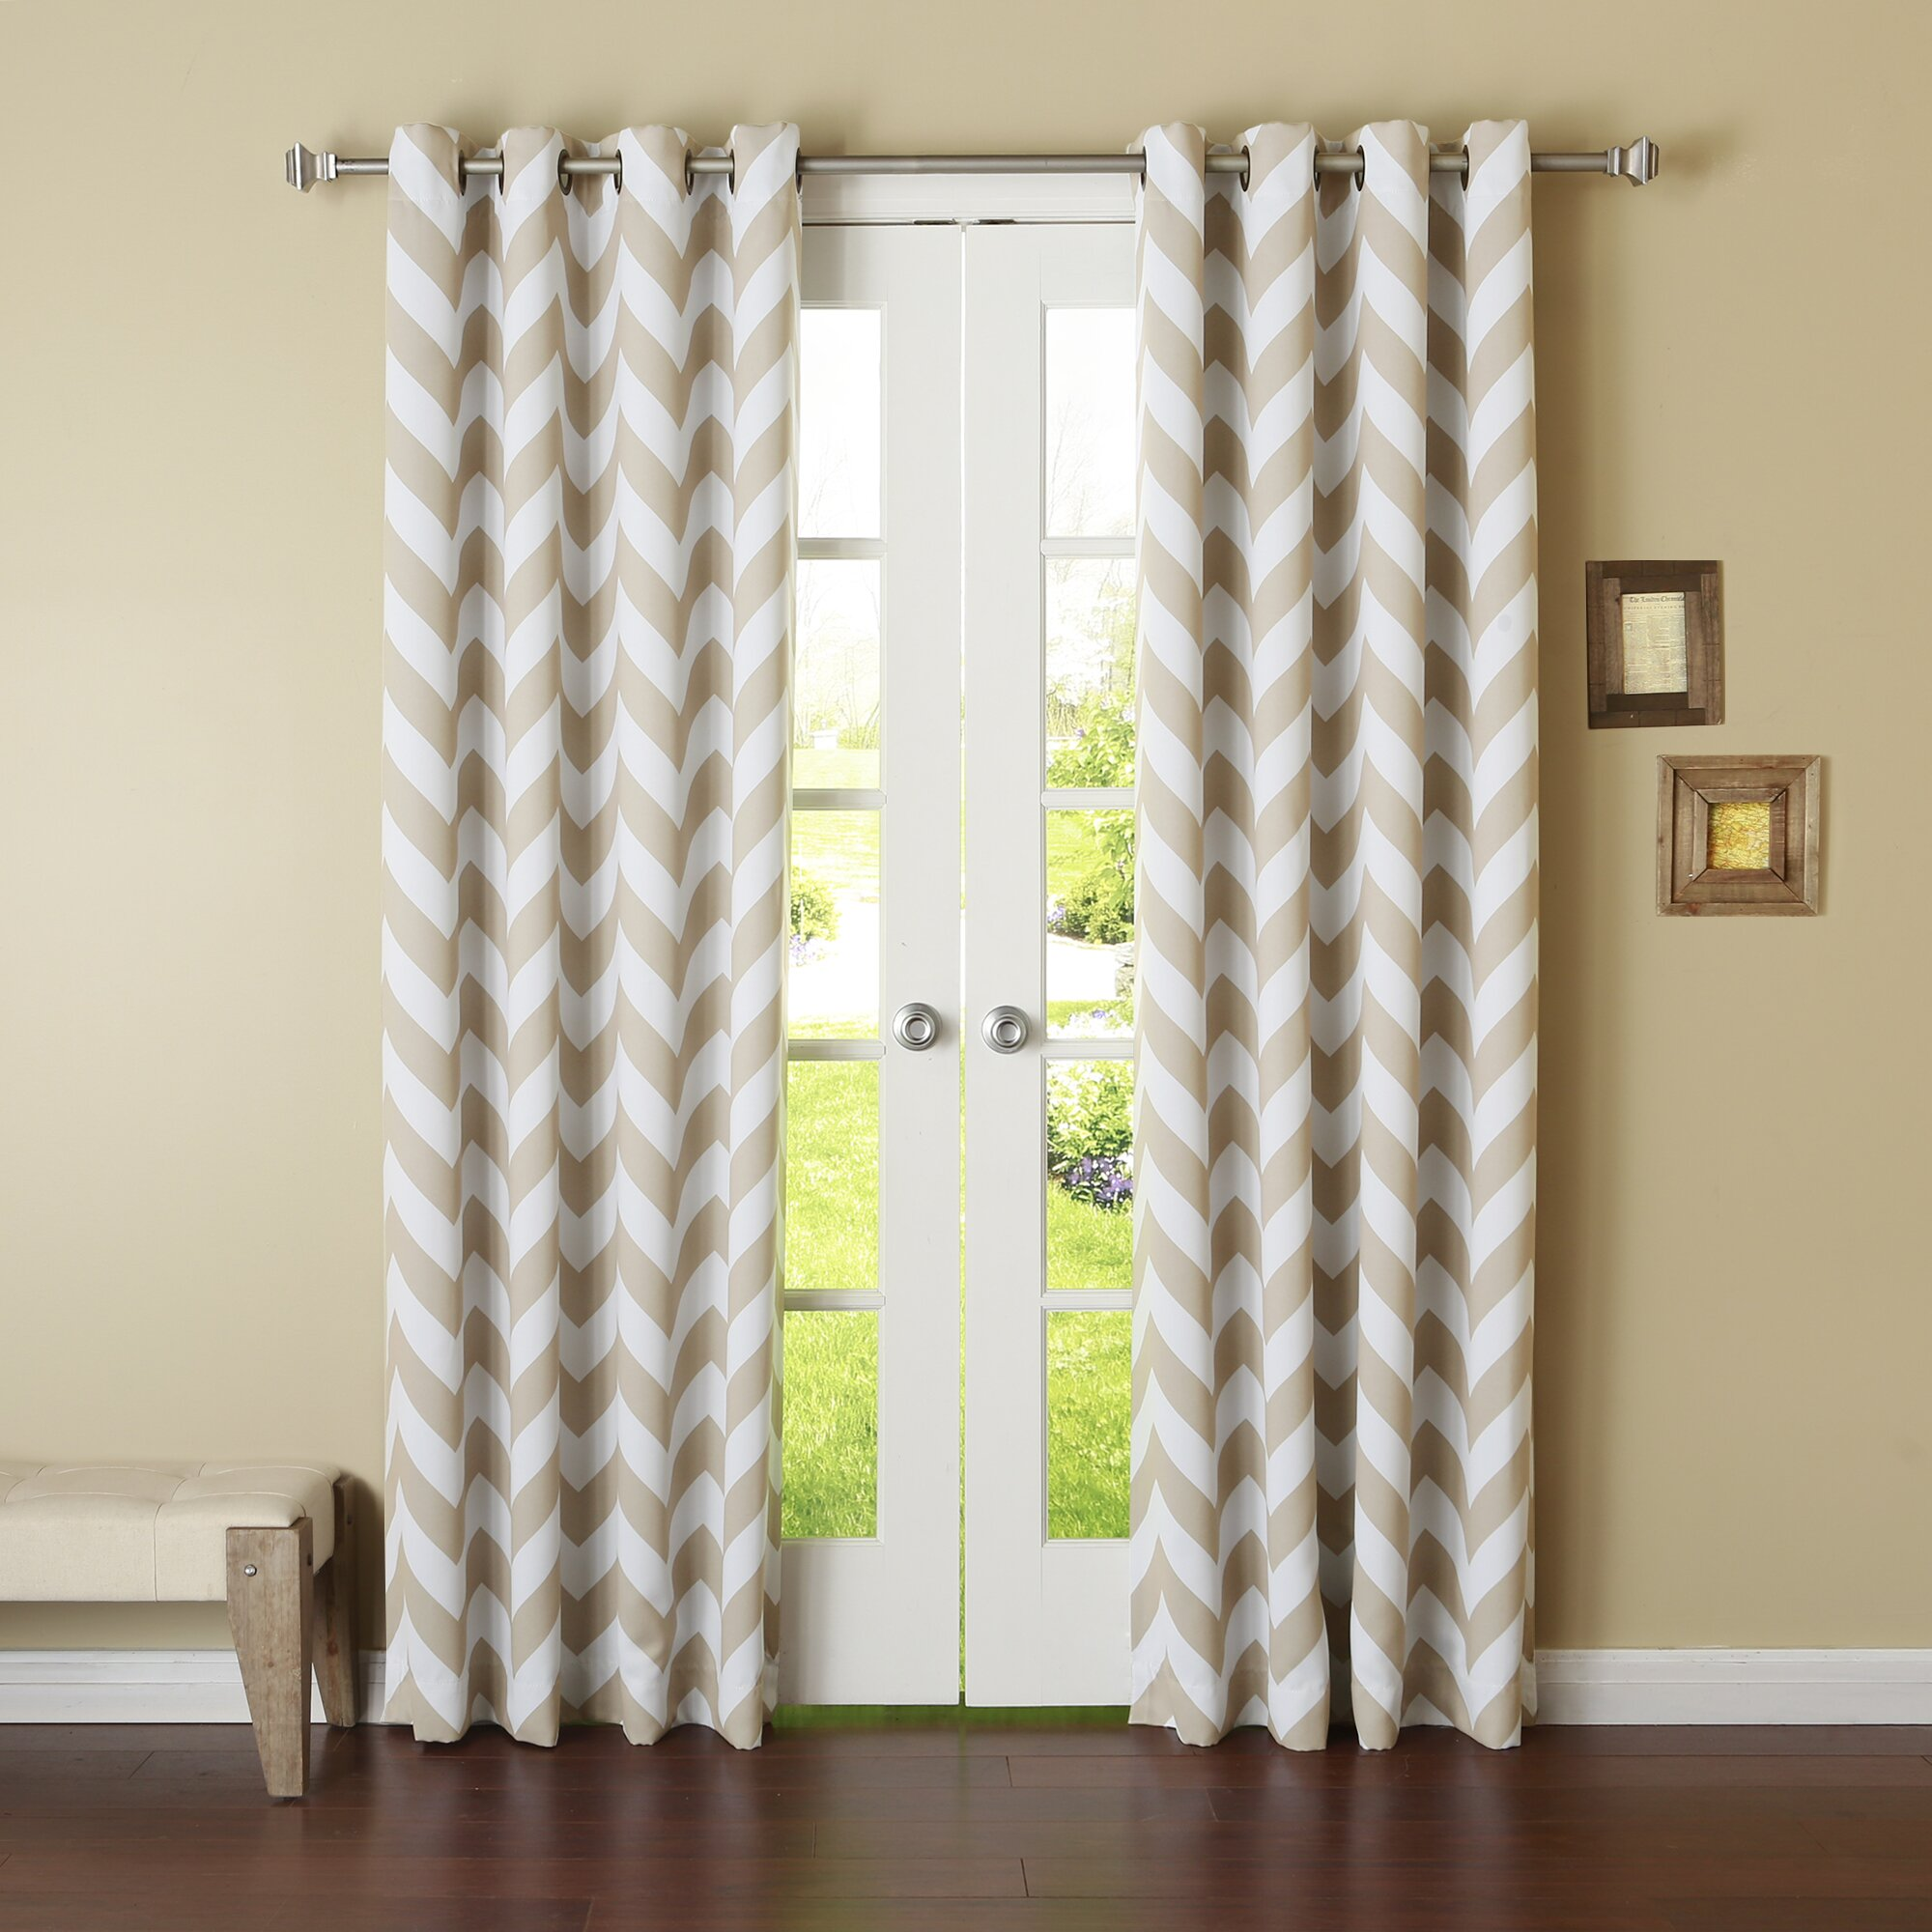 Best Home Fashion Inc Chevron Print Room Darkening